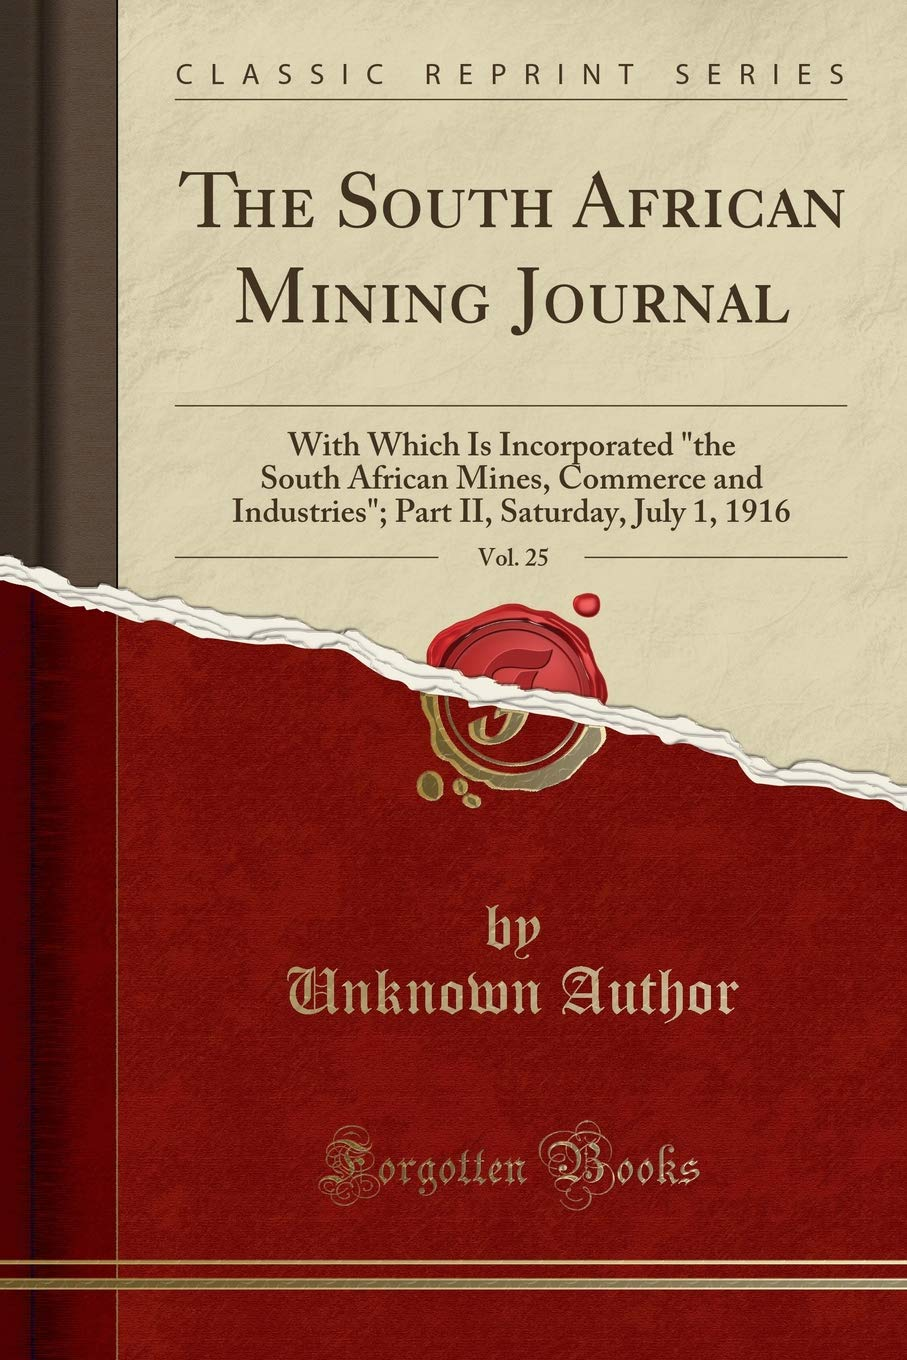 """The South African Mining Journal, Vol. 25: With Which Is Incorporated """"the South African Mines, Commerce and Industries""""; Part II, Saturday, July 1, 1916 (Classic Reprint) ebook"""